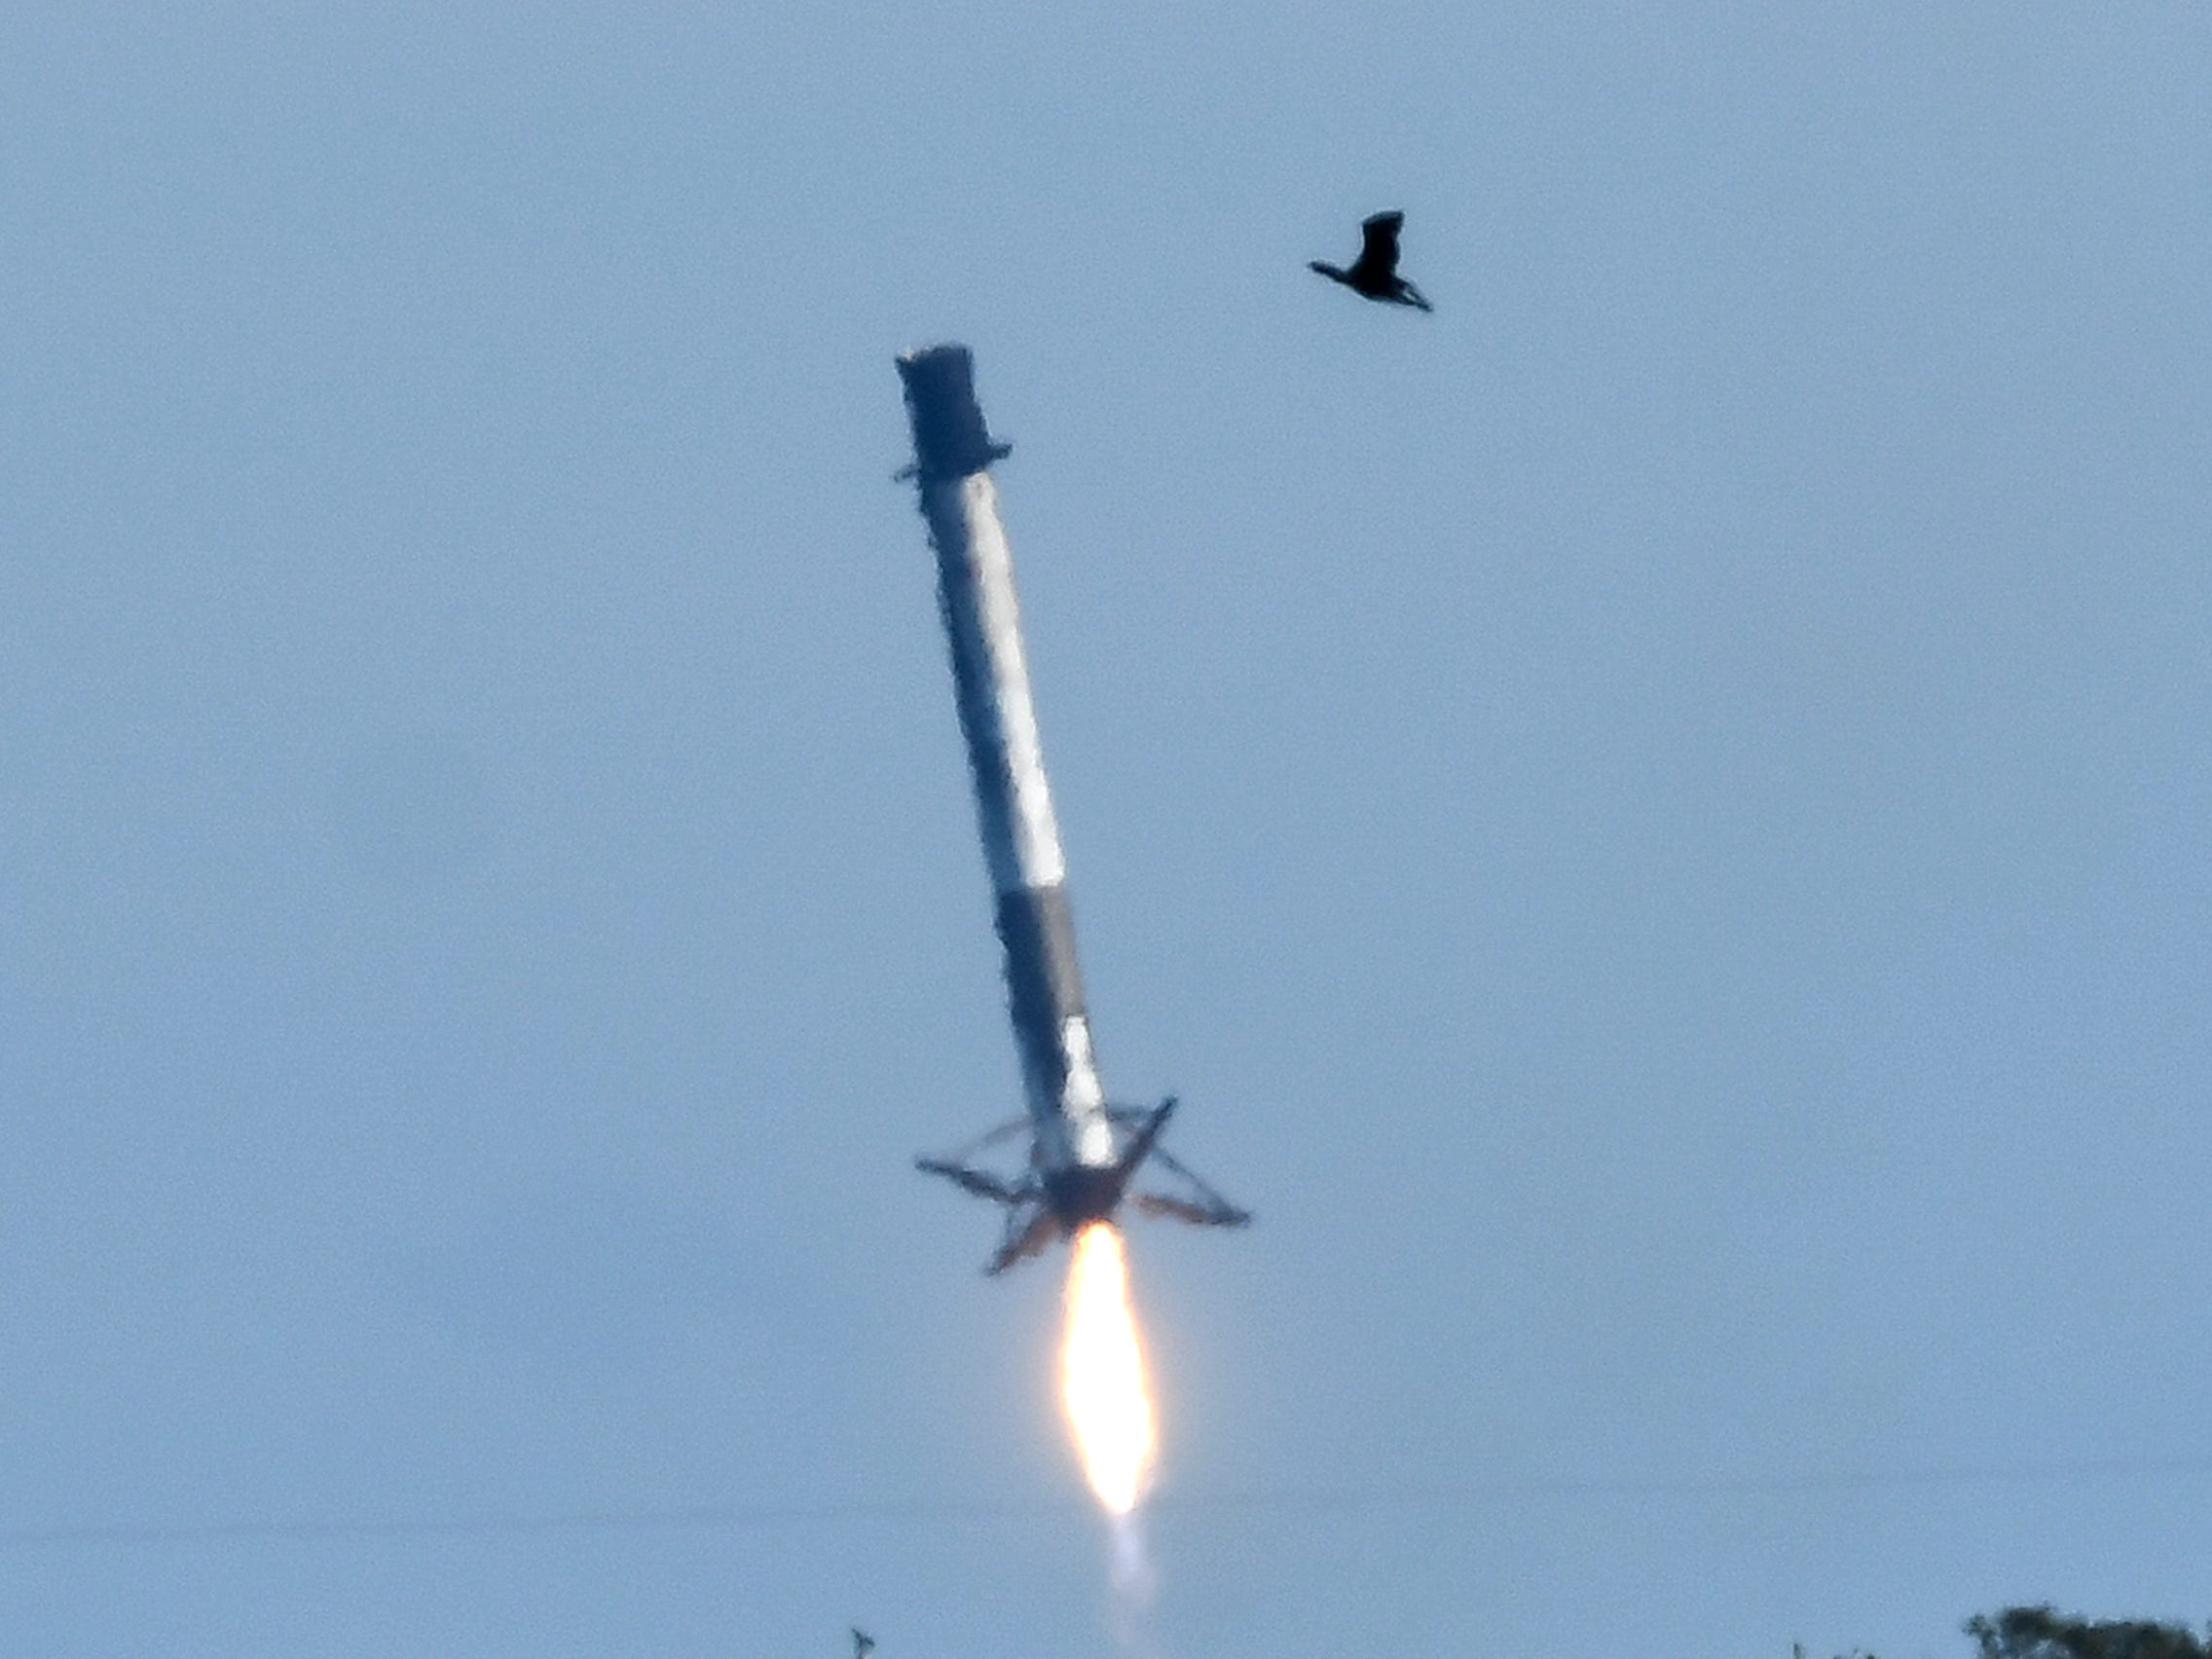 A SpaceX Falcon 9 first stage comes down for landing in the ocean off Cape Canaveral Air Force Station Wednesday, Dec.5, 2018. The rocket delivered it's cargo to orbit but landed off target.